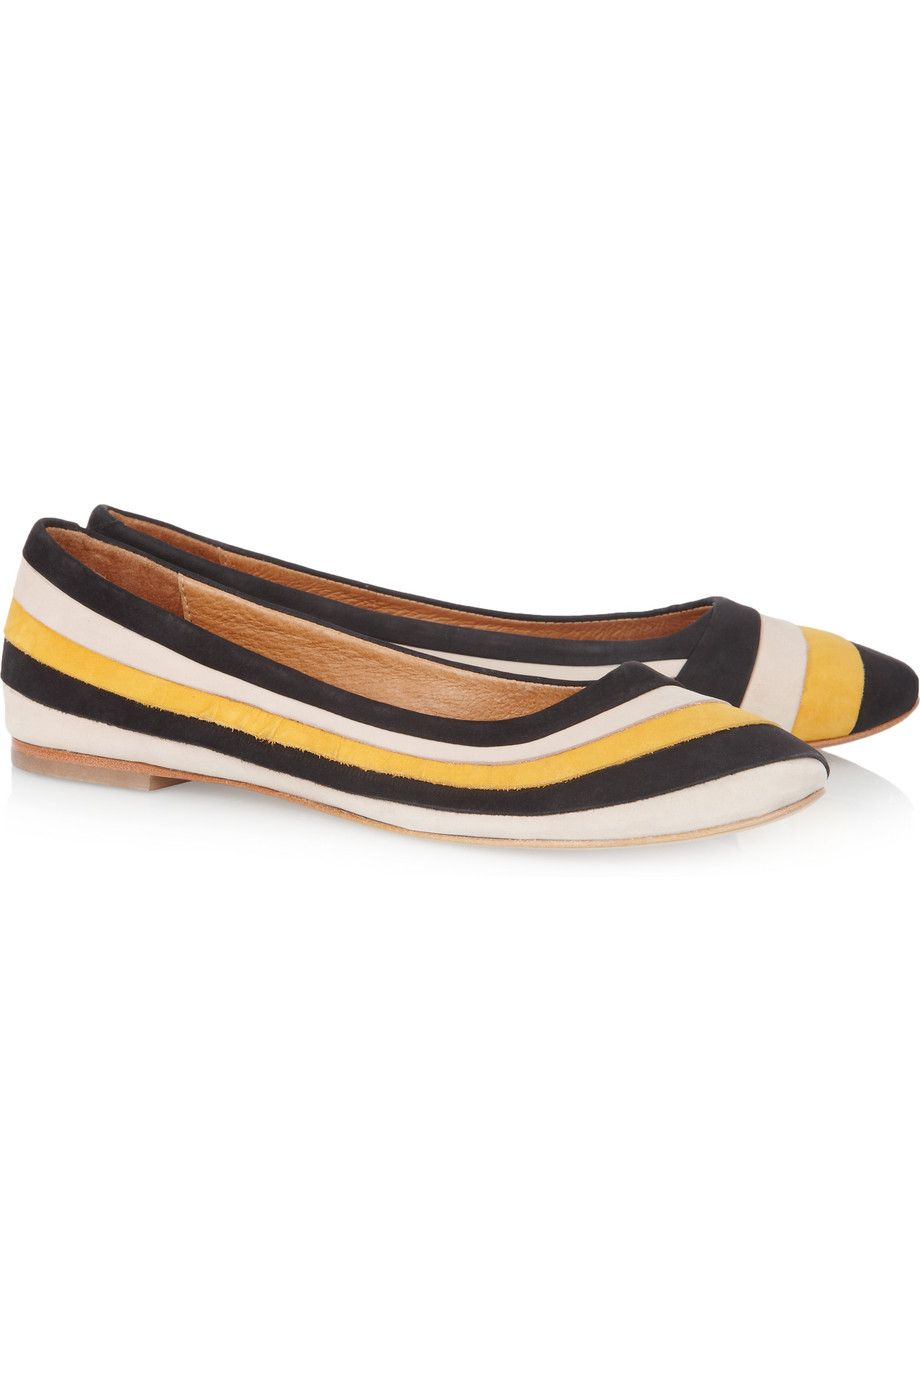 Minimarket pleated suede ballet flats 55 off now at the